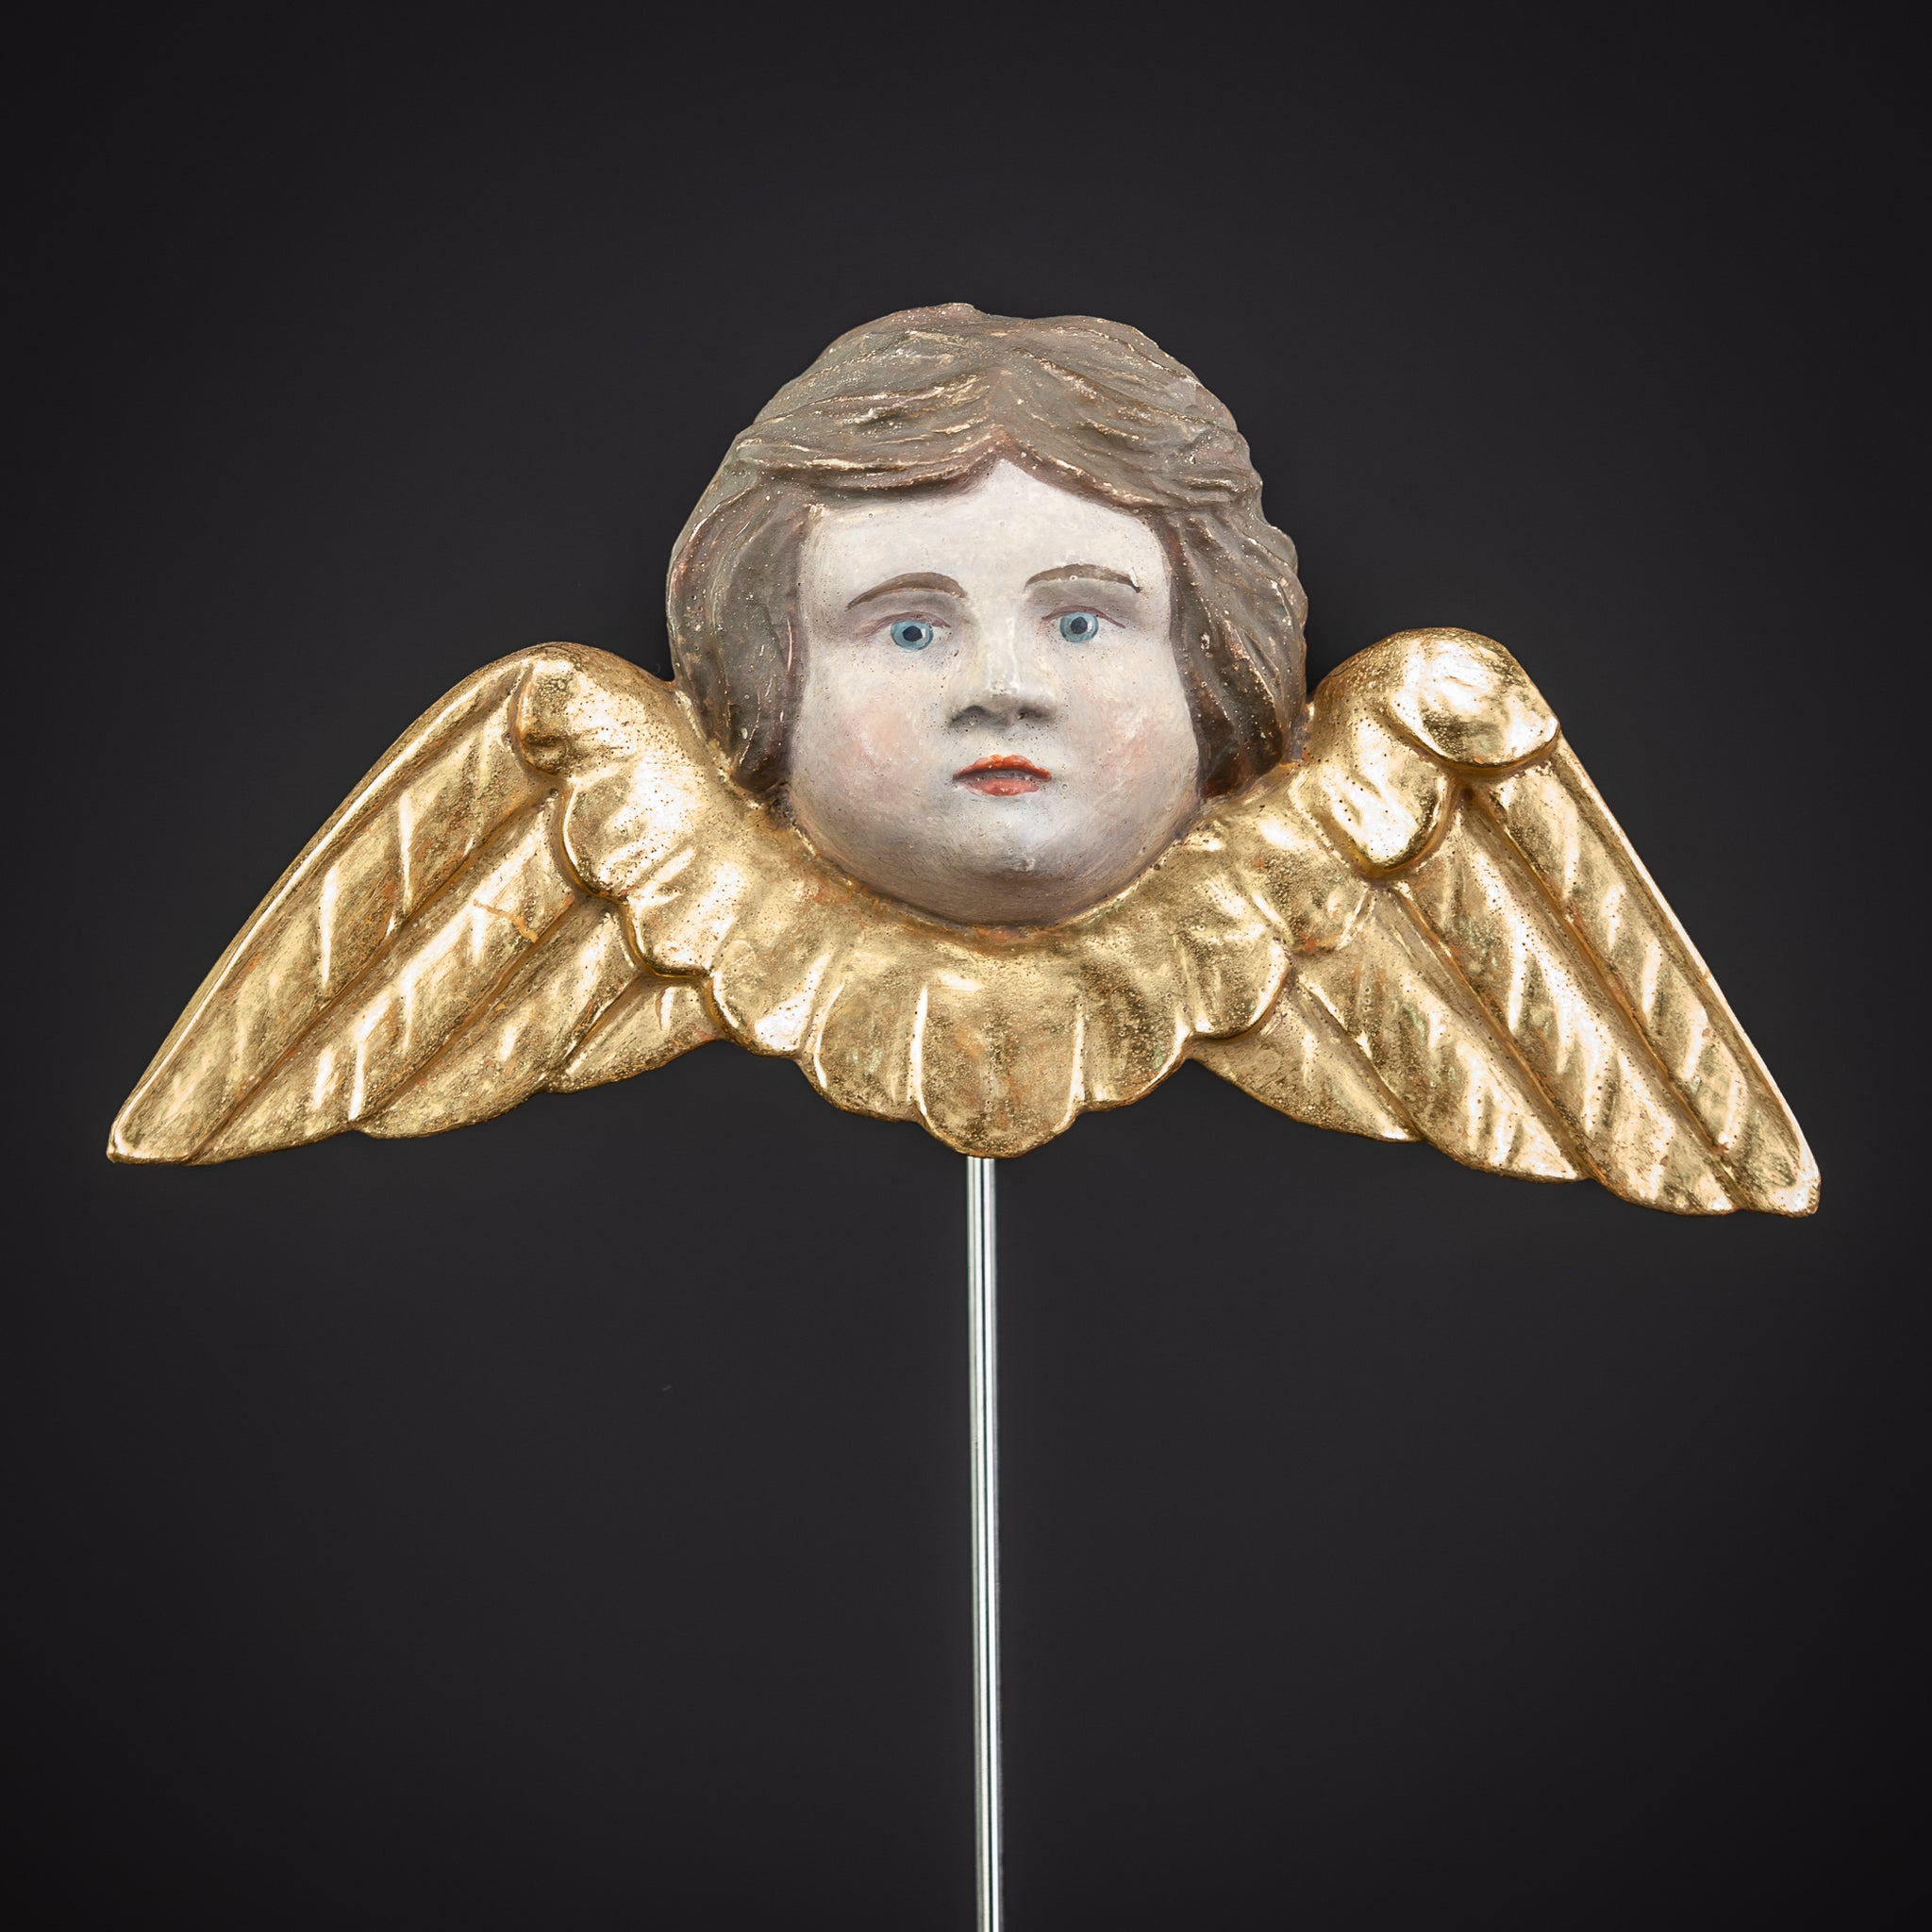 Angel Wood Carving Statue 9.4""